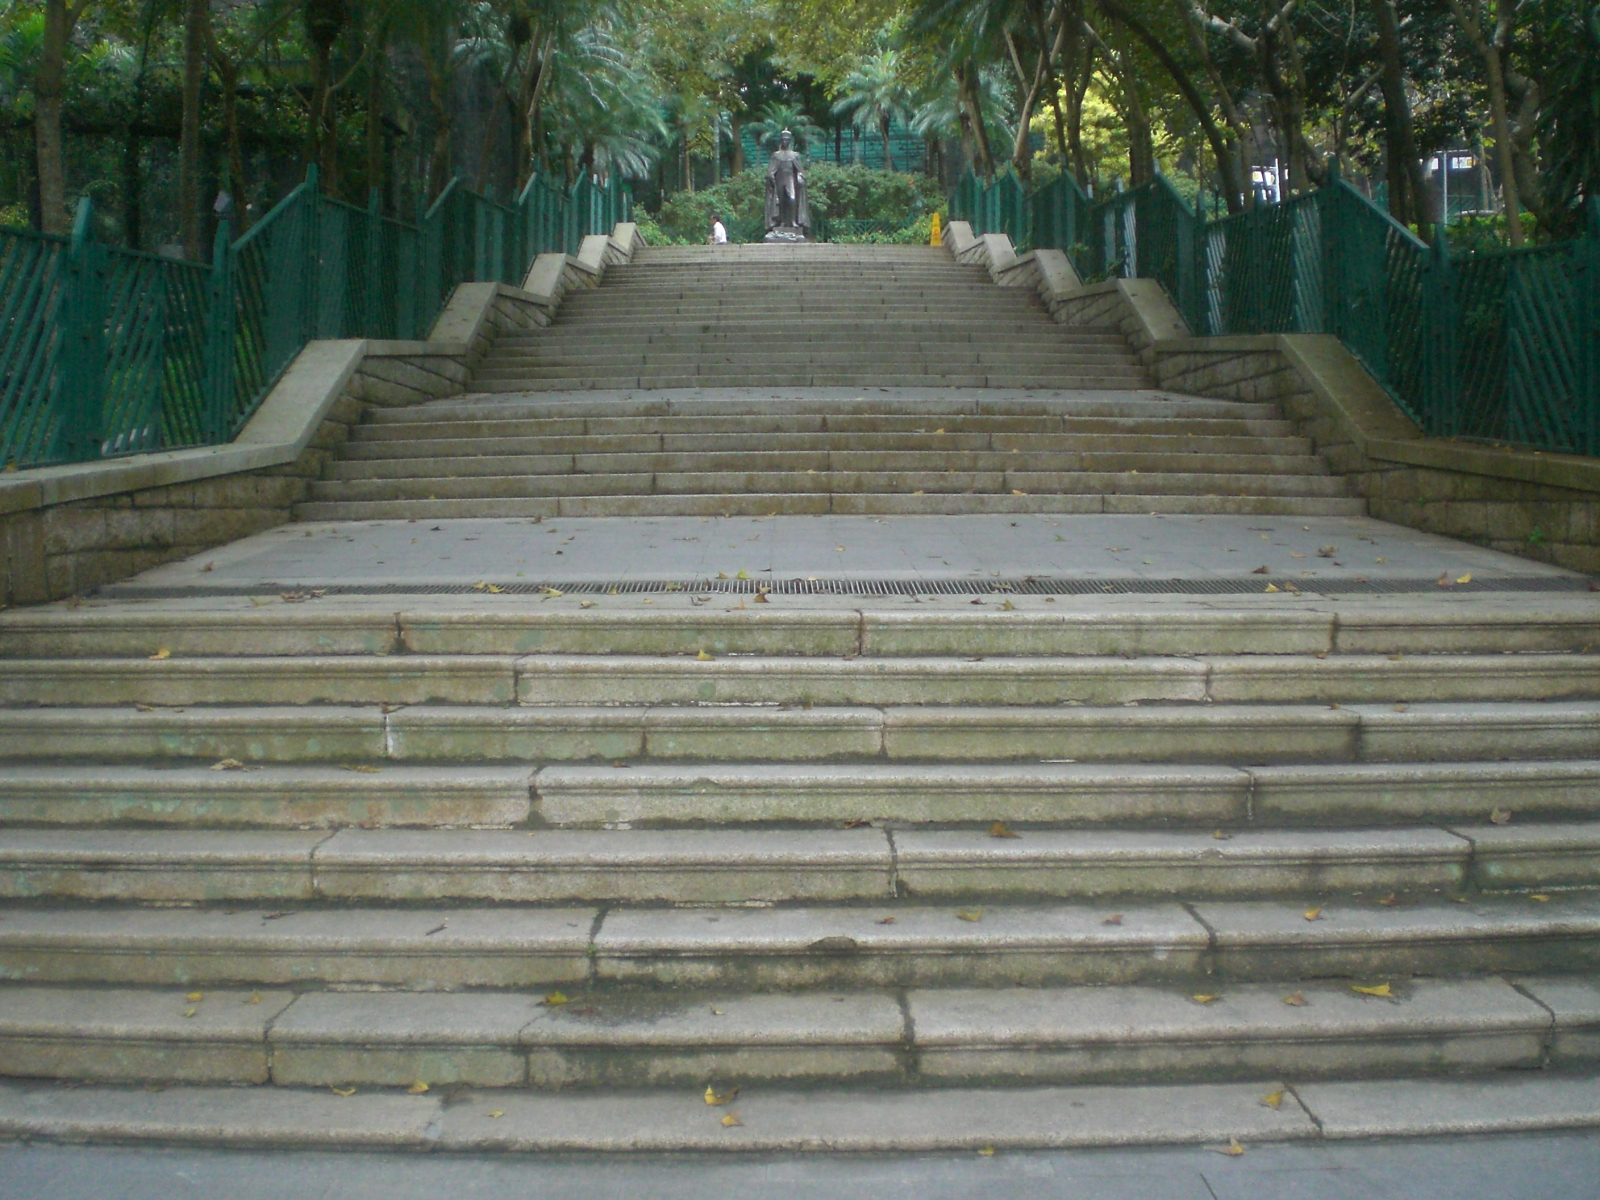 File:HK ZaB Garden King George VI Statue Outdside Stairs.JPG